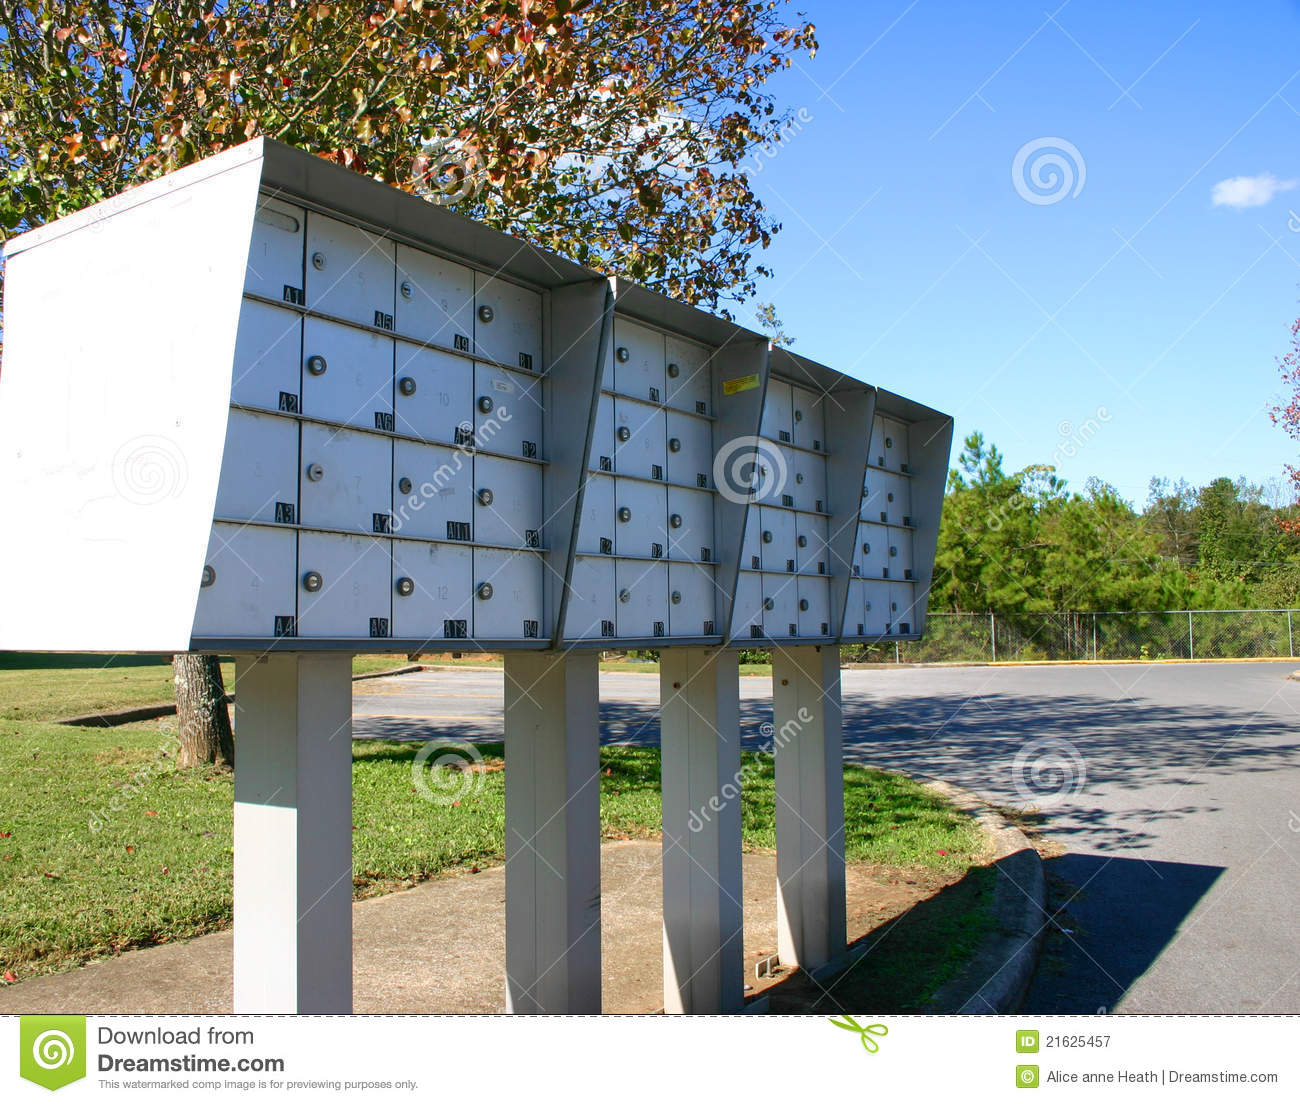 Awesome Mailboxes For Apartment Buildings Contemporary - Interior ...